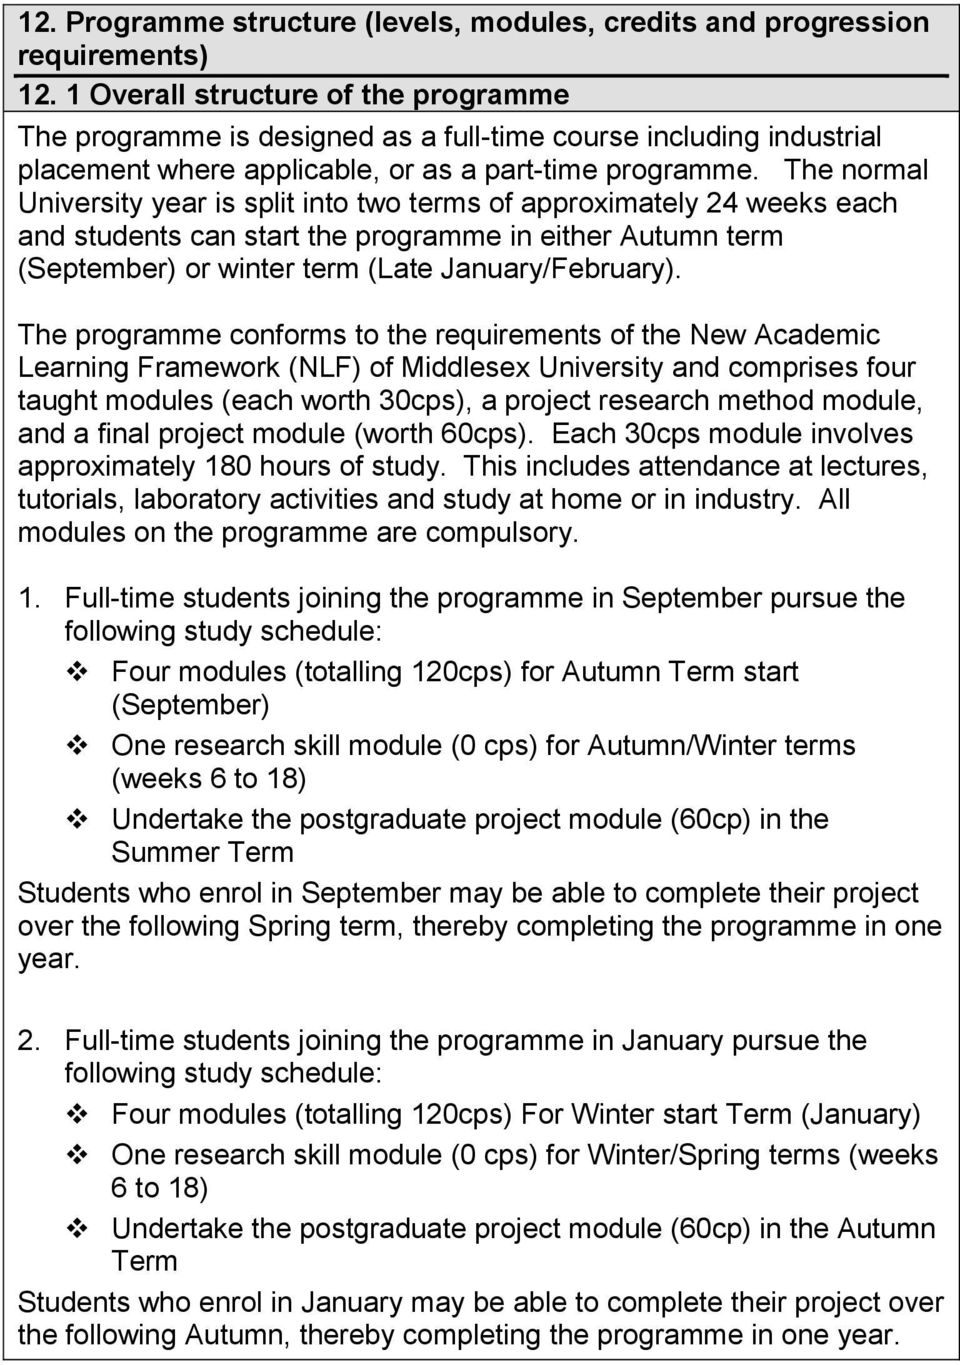 The normal University year is split into two terms of approximately 24 weeks each and students can start the programme in either Autumn term (September) or winter term (Late January/February).